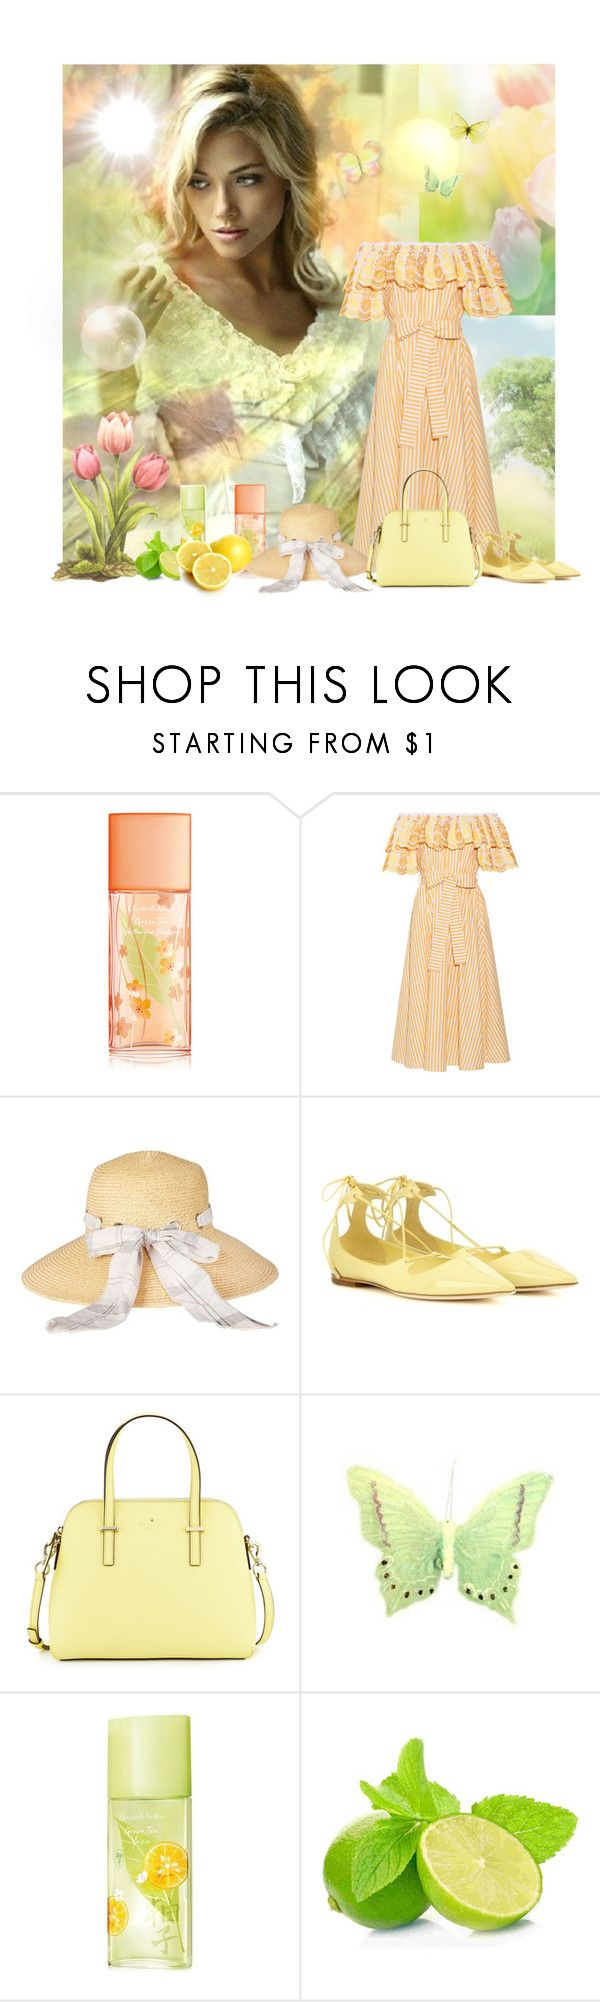 """Untitled #2710"" by neverorever ❤ liked on Polyvore featuring Elizabeth Arden, Gül Hürgel, Barbour, Jimmy Choo and Kate Spade"